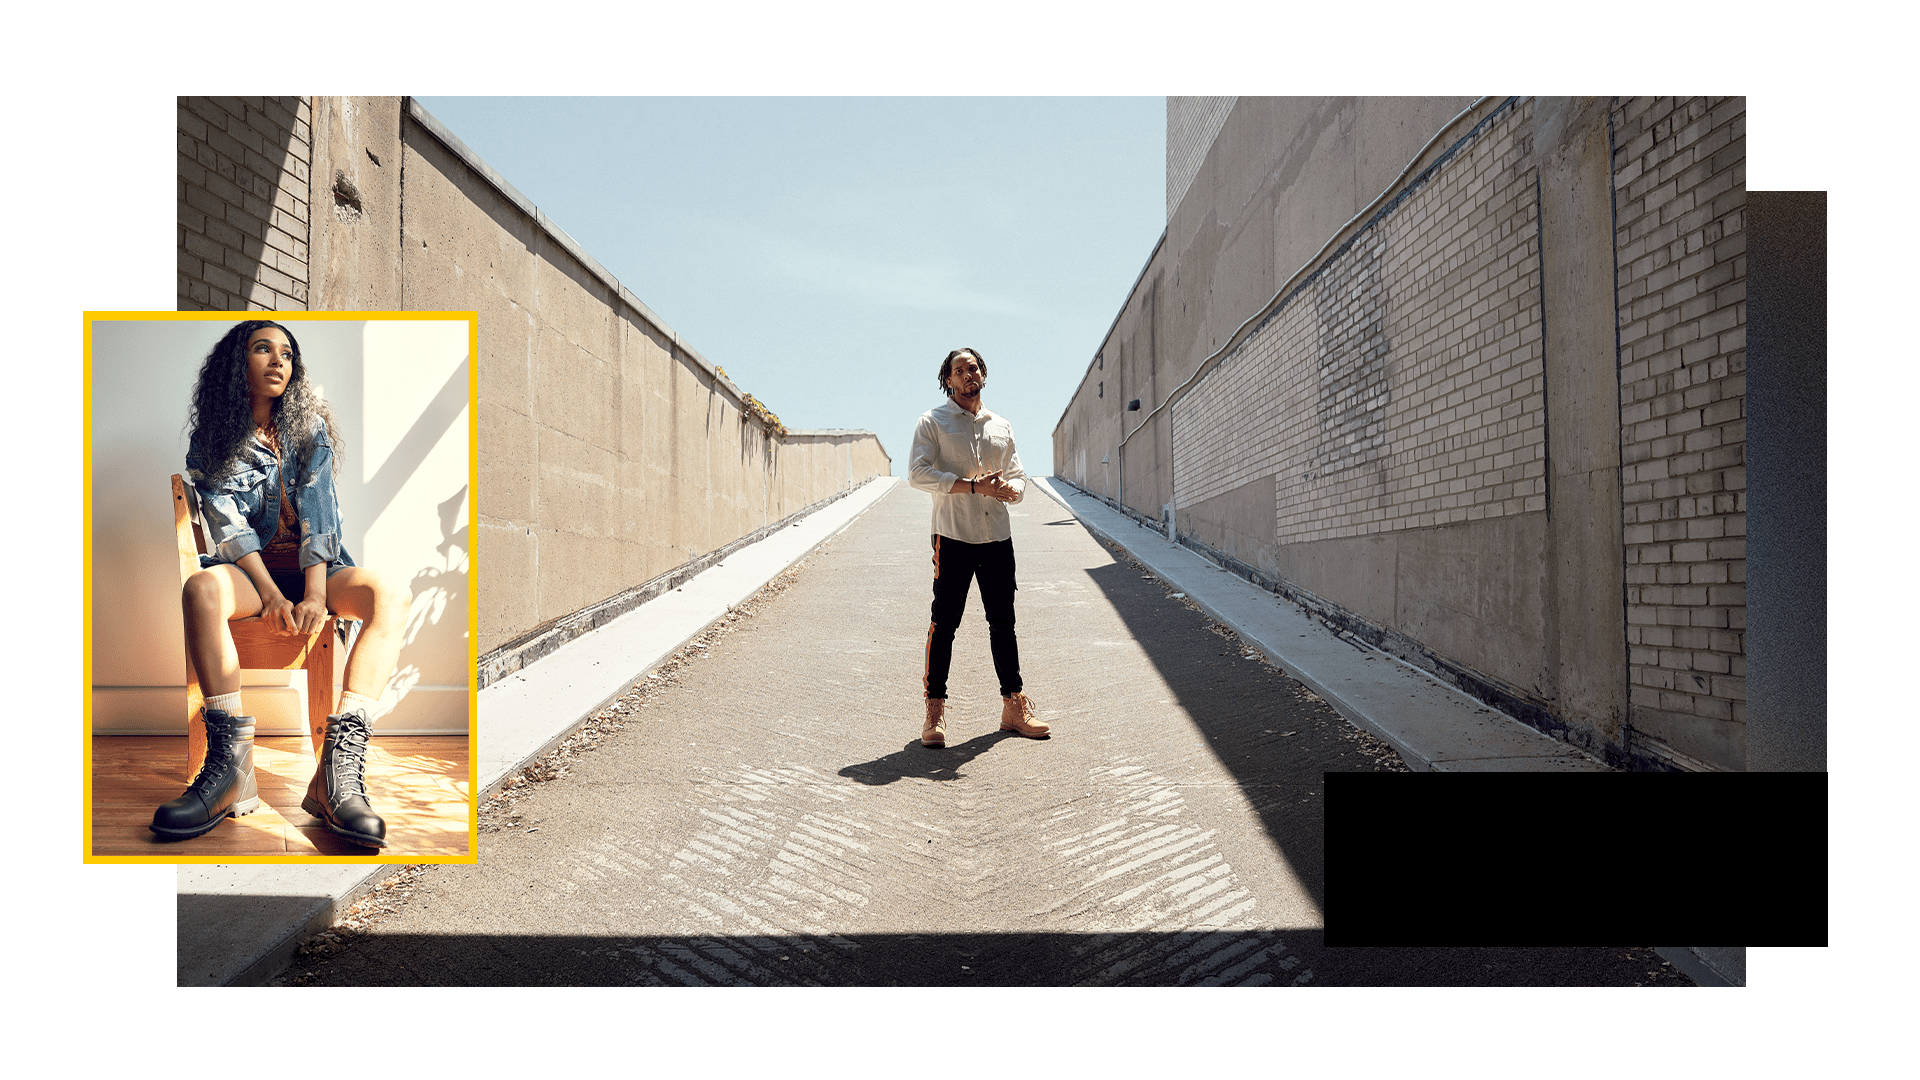 Man stand on ramp with super imposed imag of woman sitting